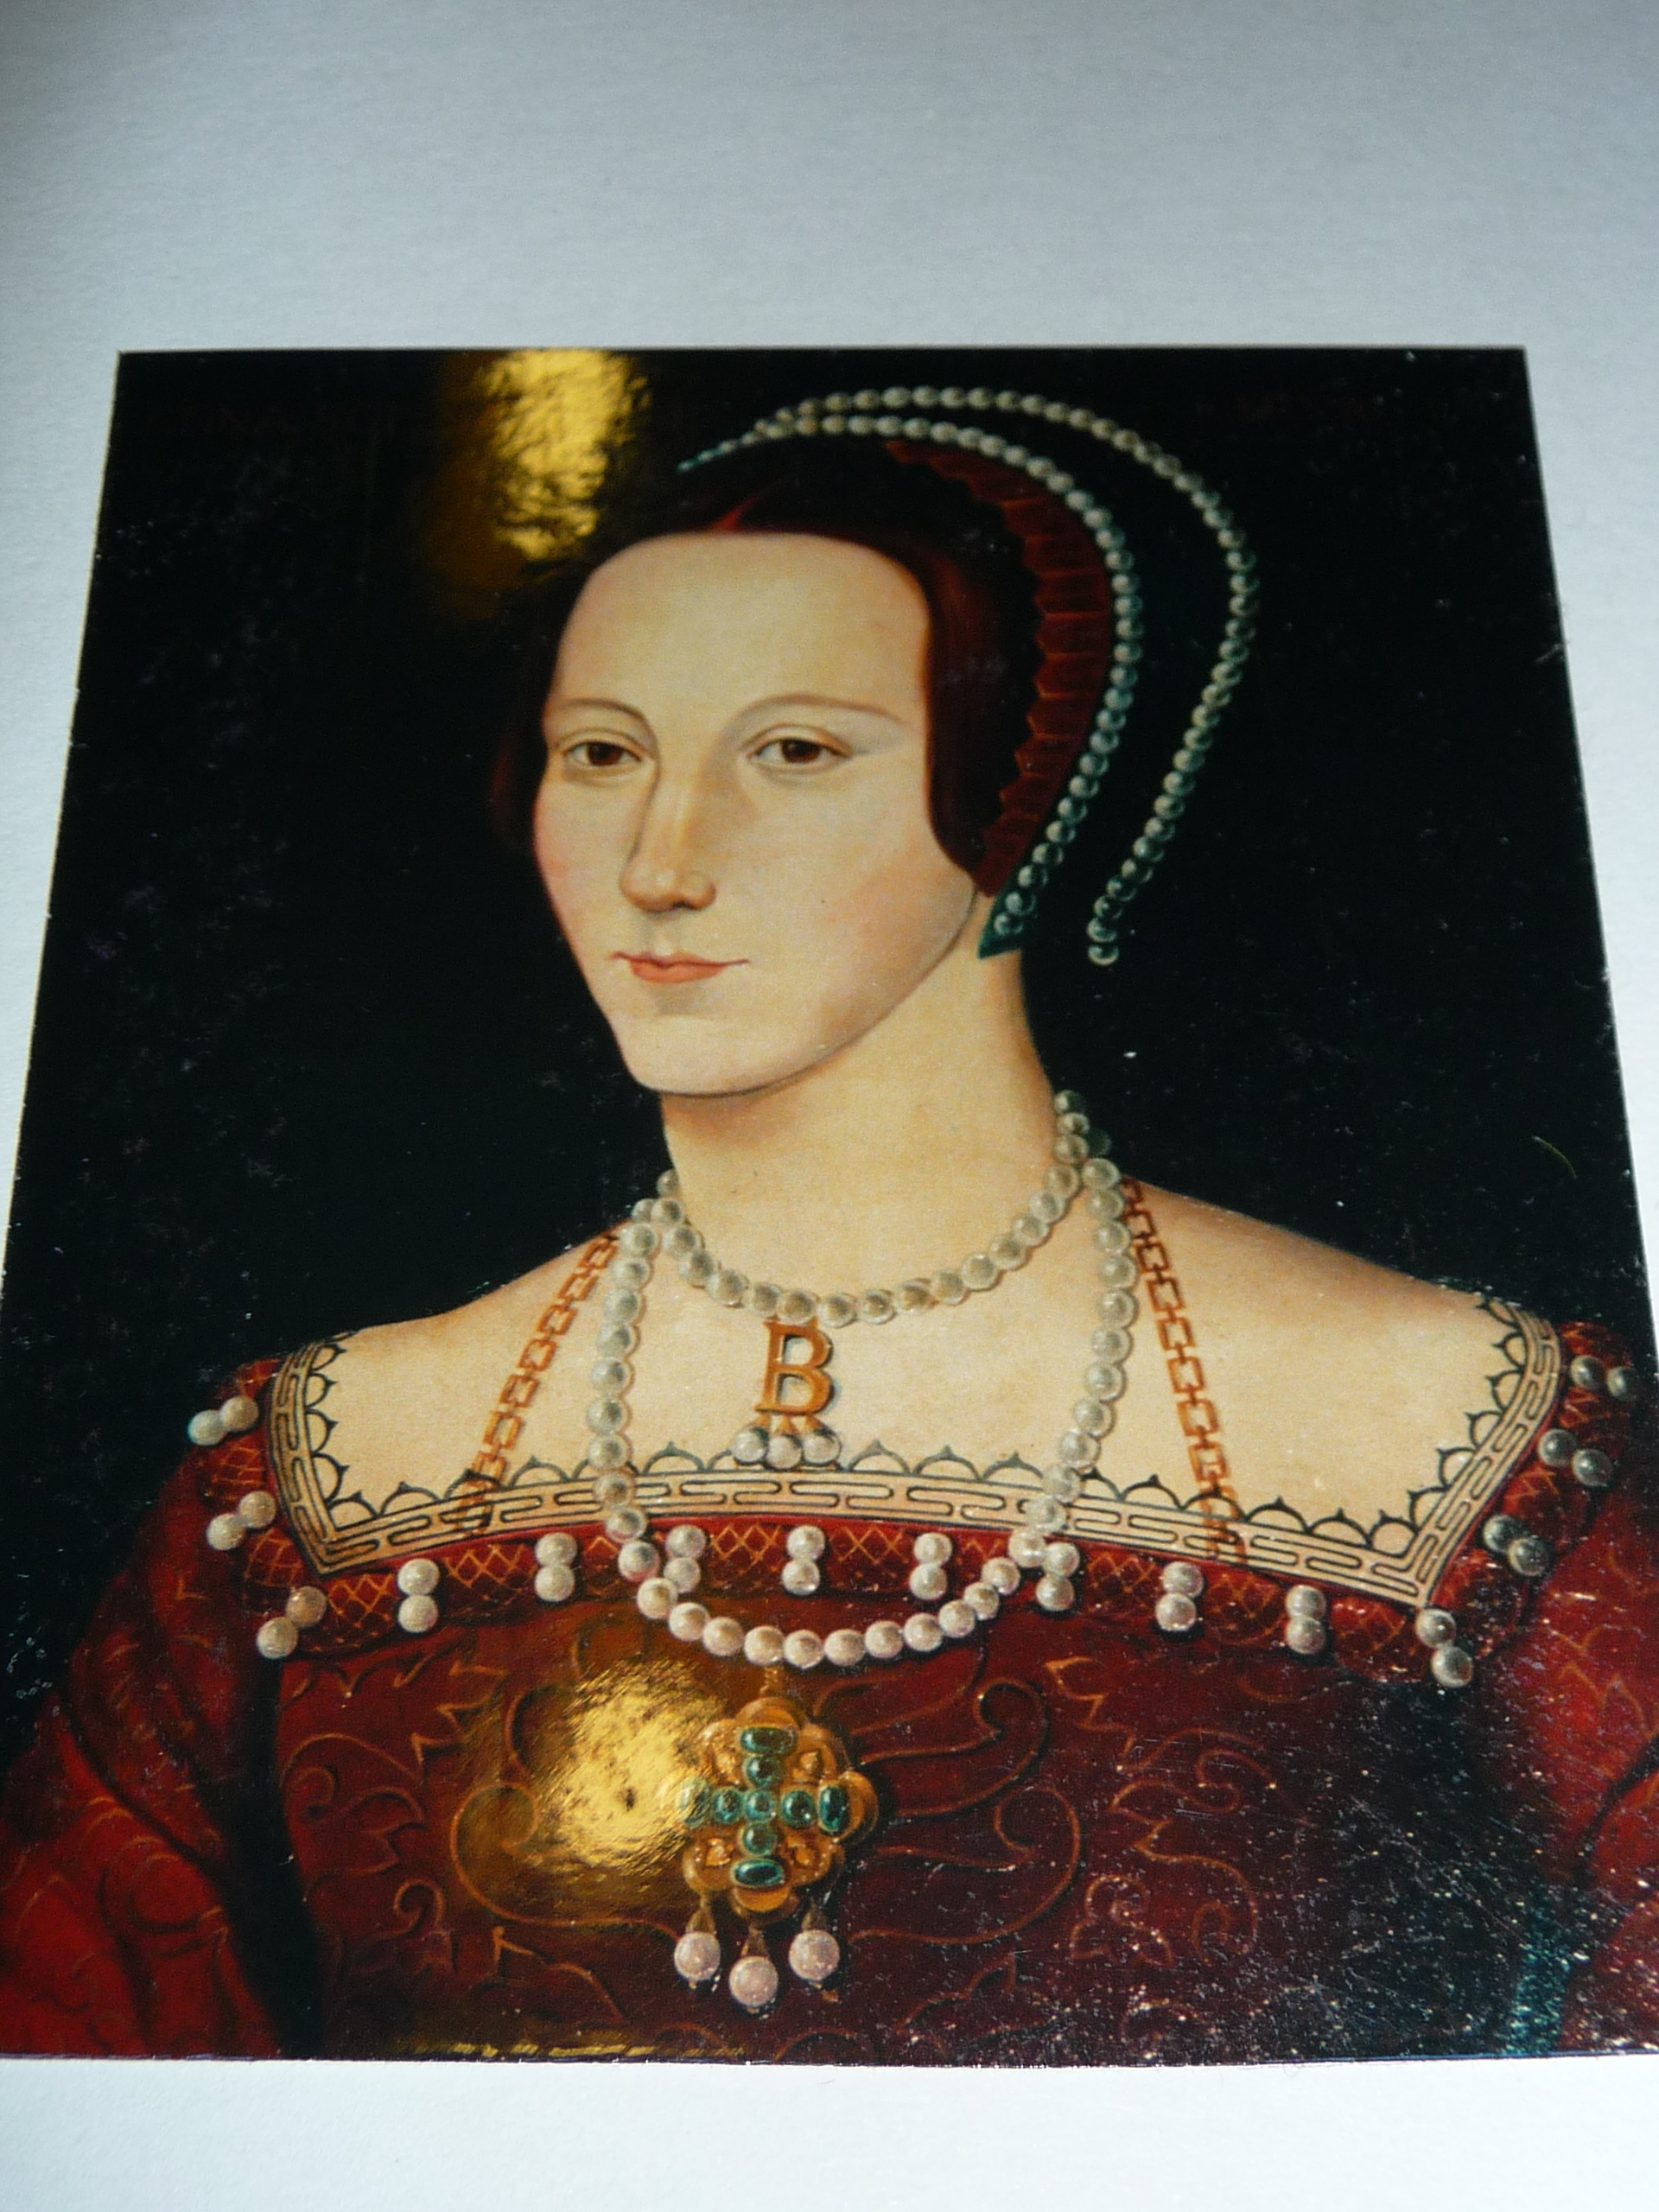 Research topic on Anne Boleyn?